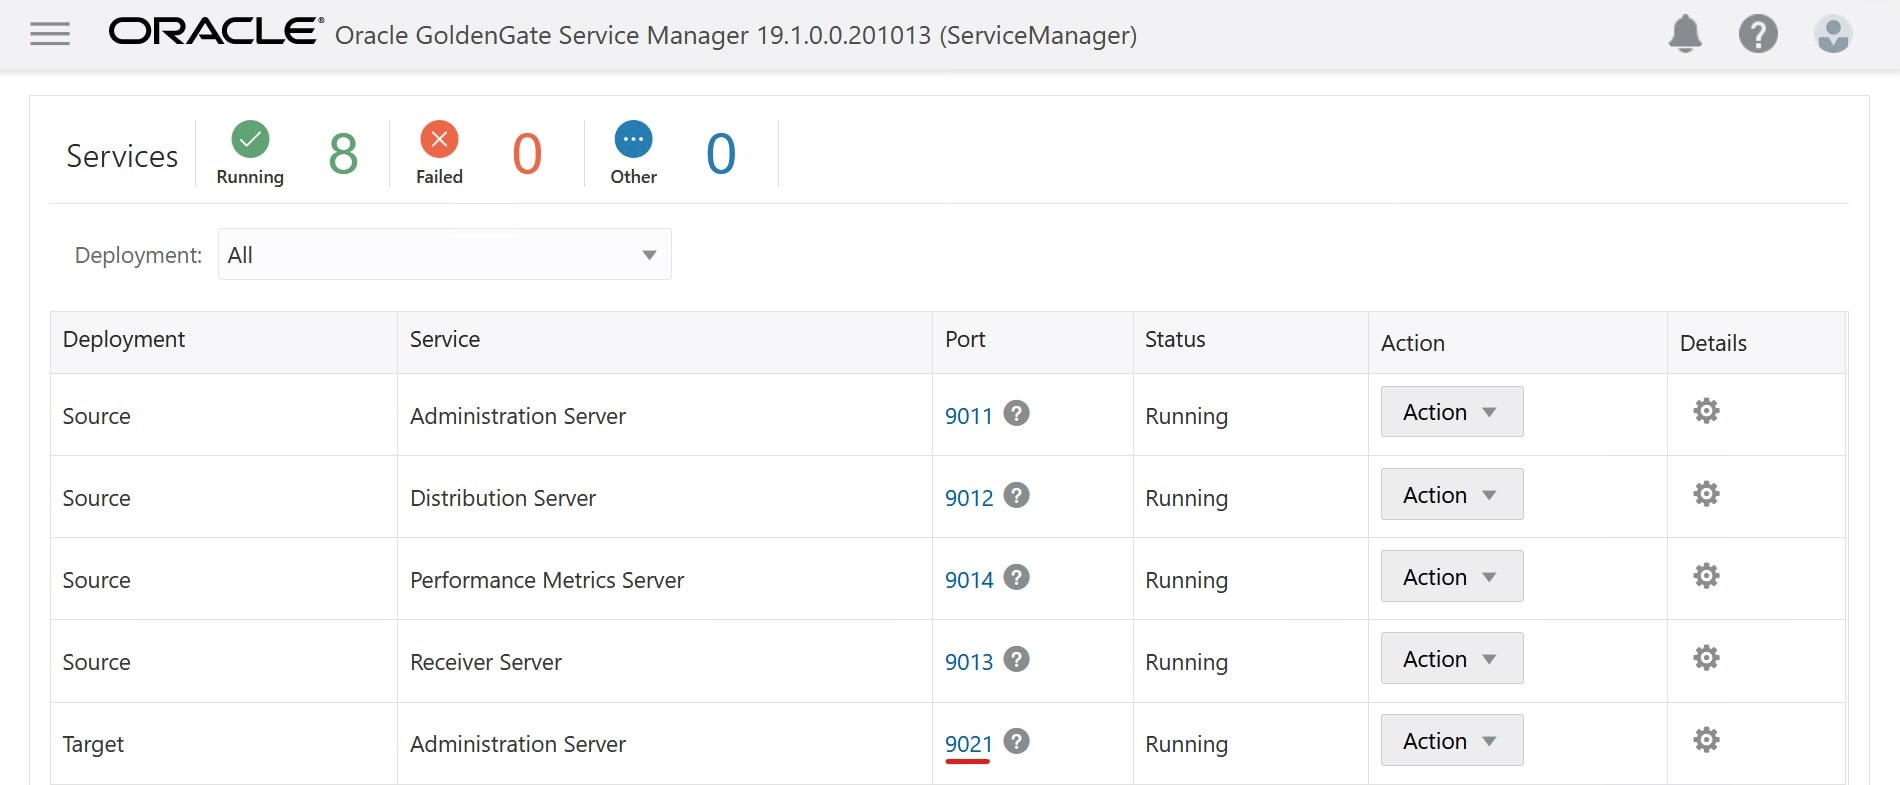 Follow the link to the target administration server to monitor the replicat process